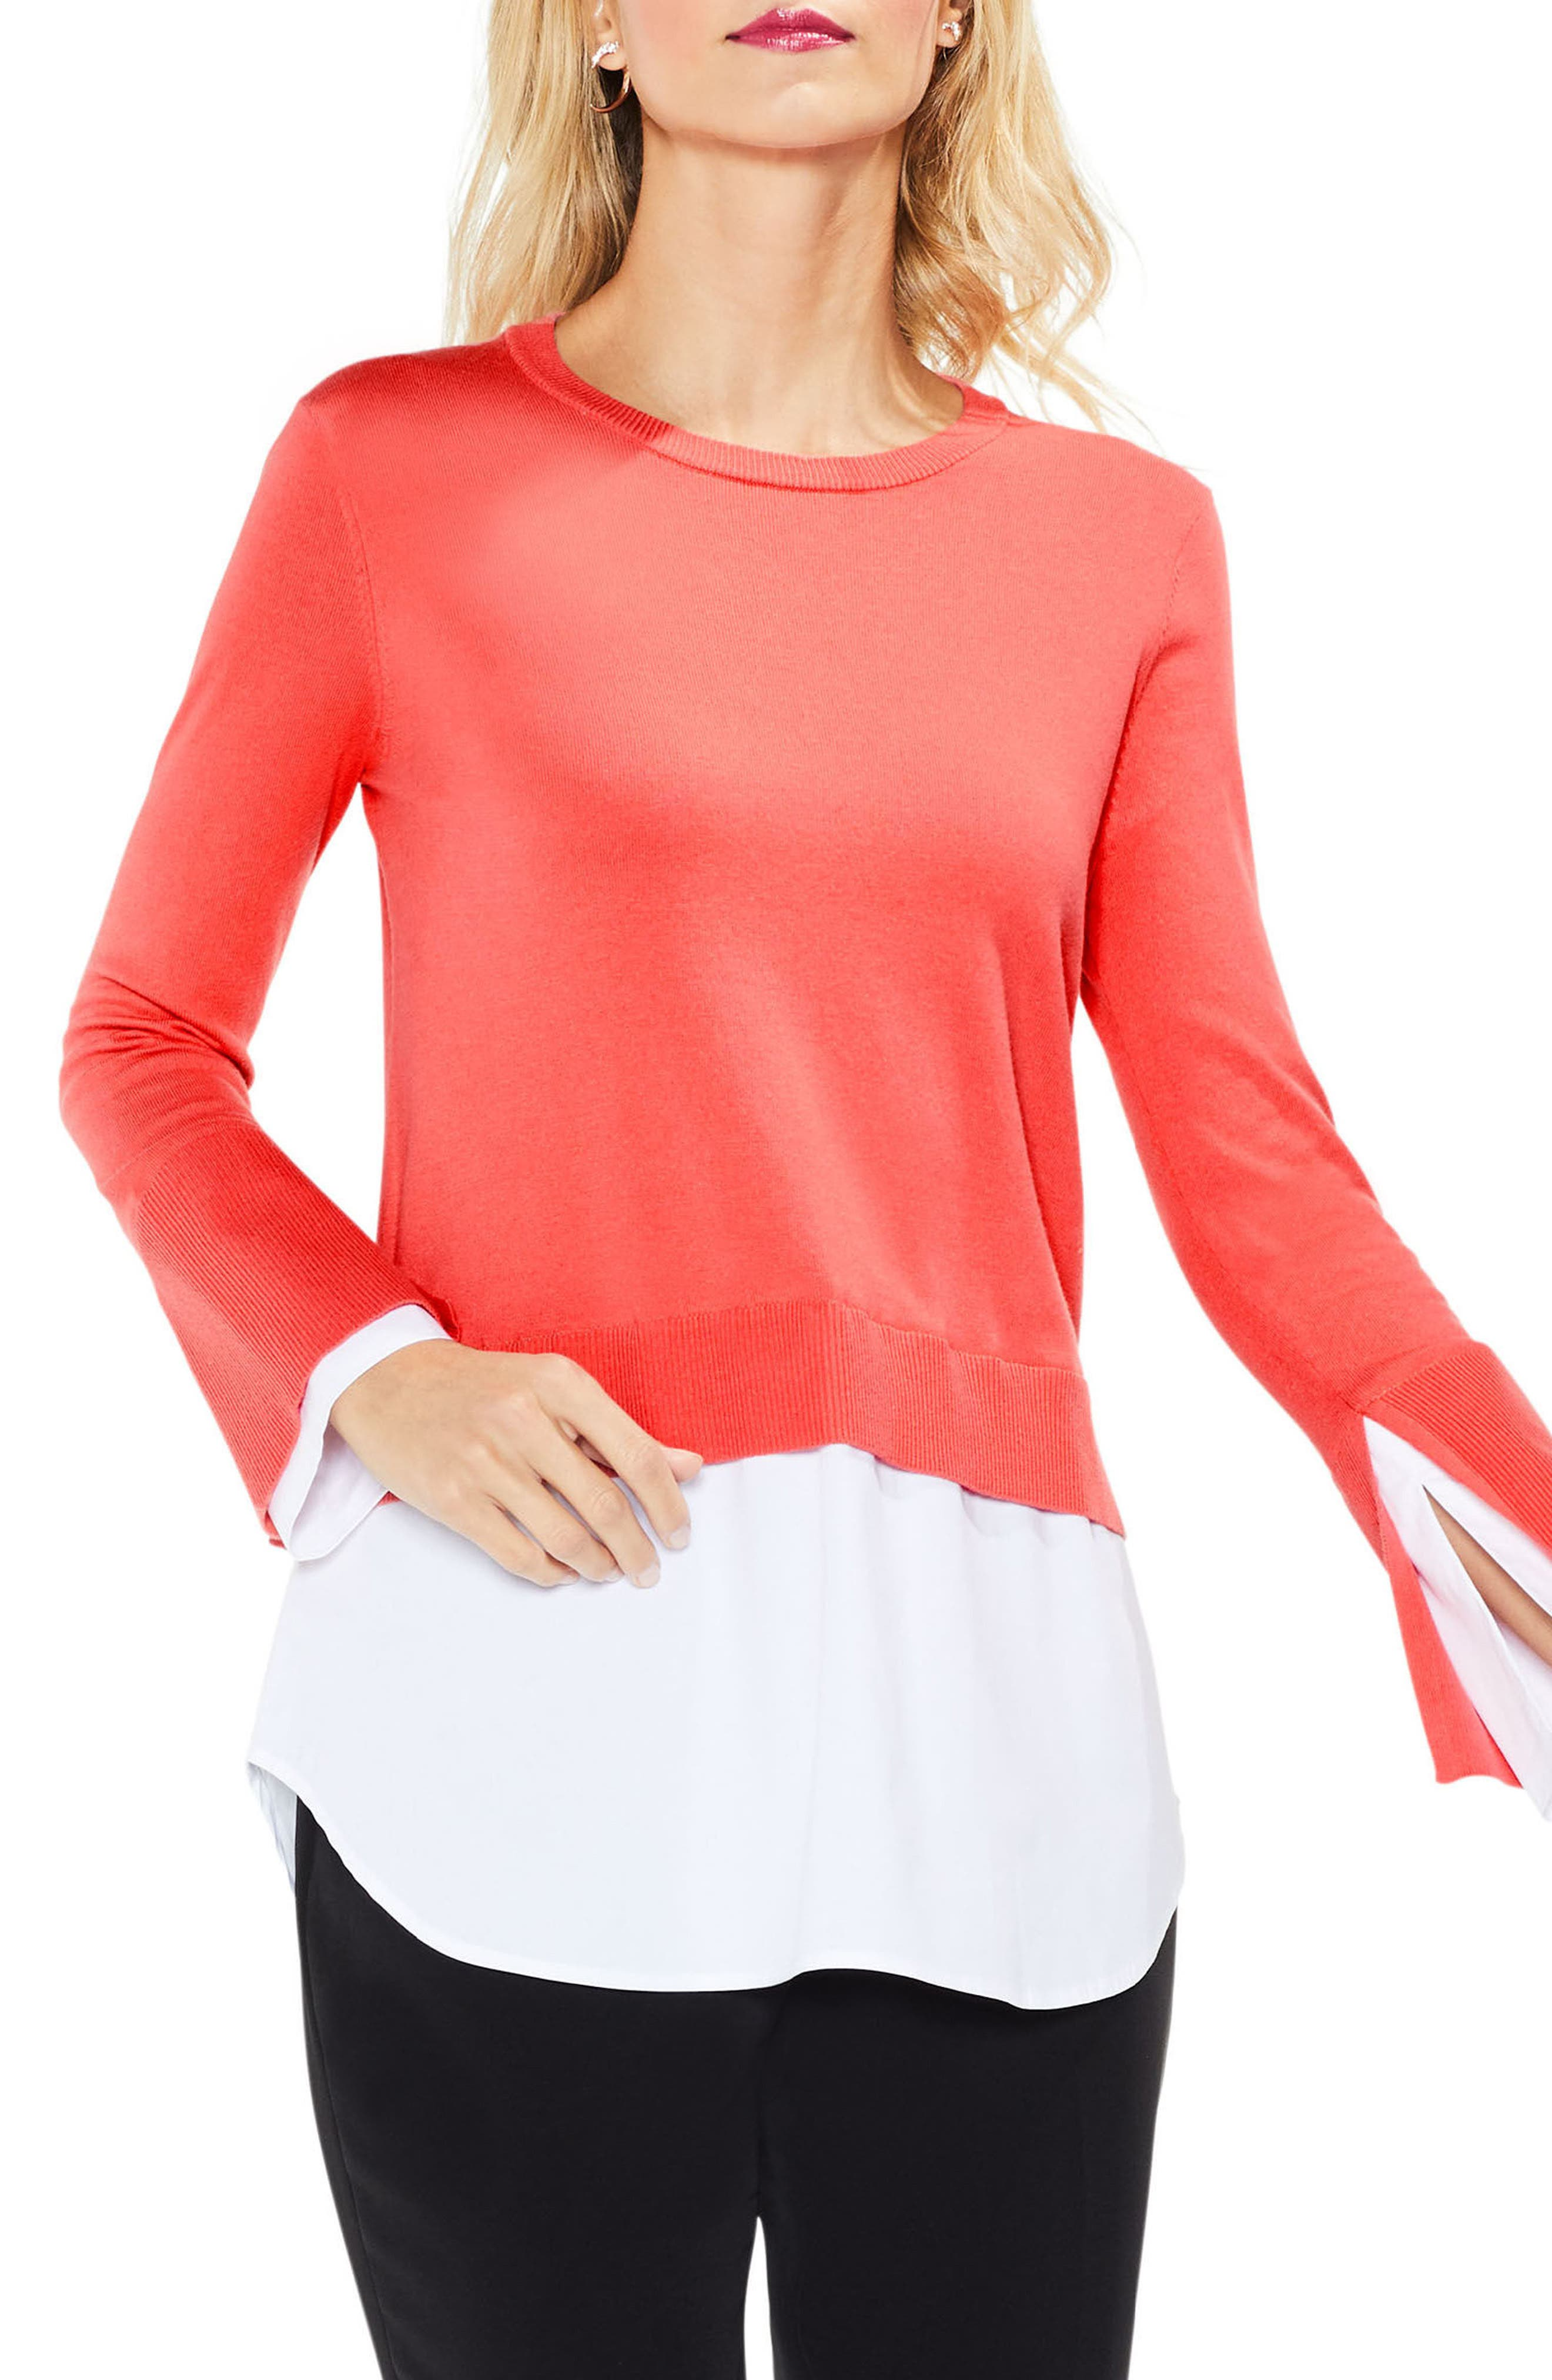 Alternate Image 1 Selected - Vince Camuto Layered Look Sweater